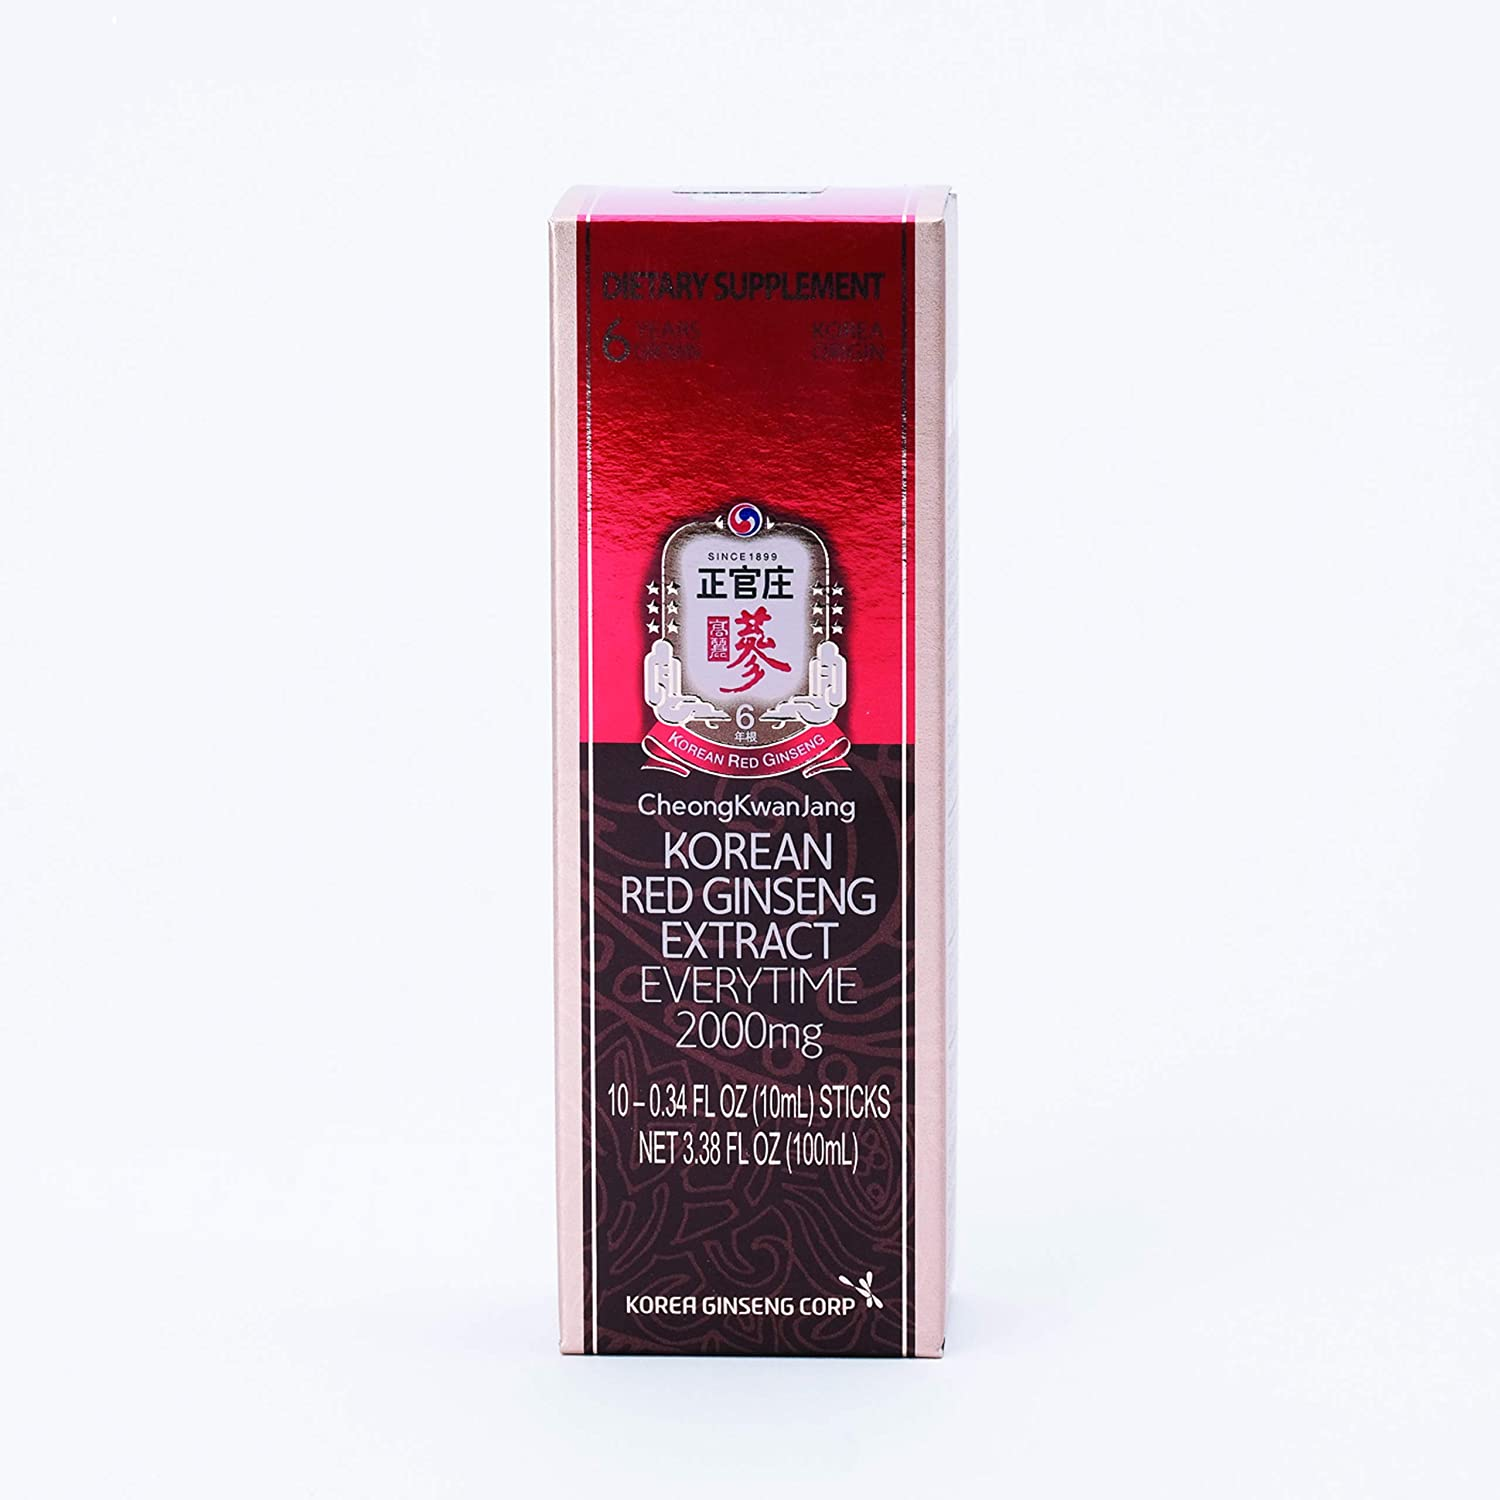 Everytime 2000 Milligrams - Korean Panax Red Ginseng Extract Portable Sticks for Healthy Immune Support and Energy Levels - 10 Stick Packs